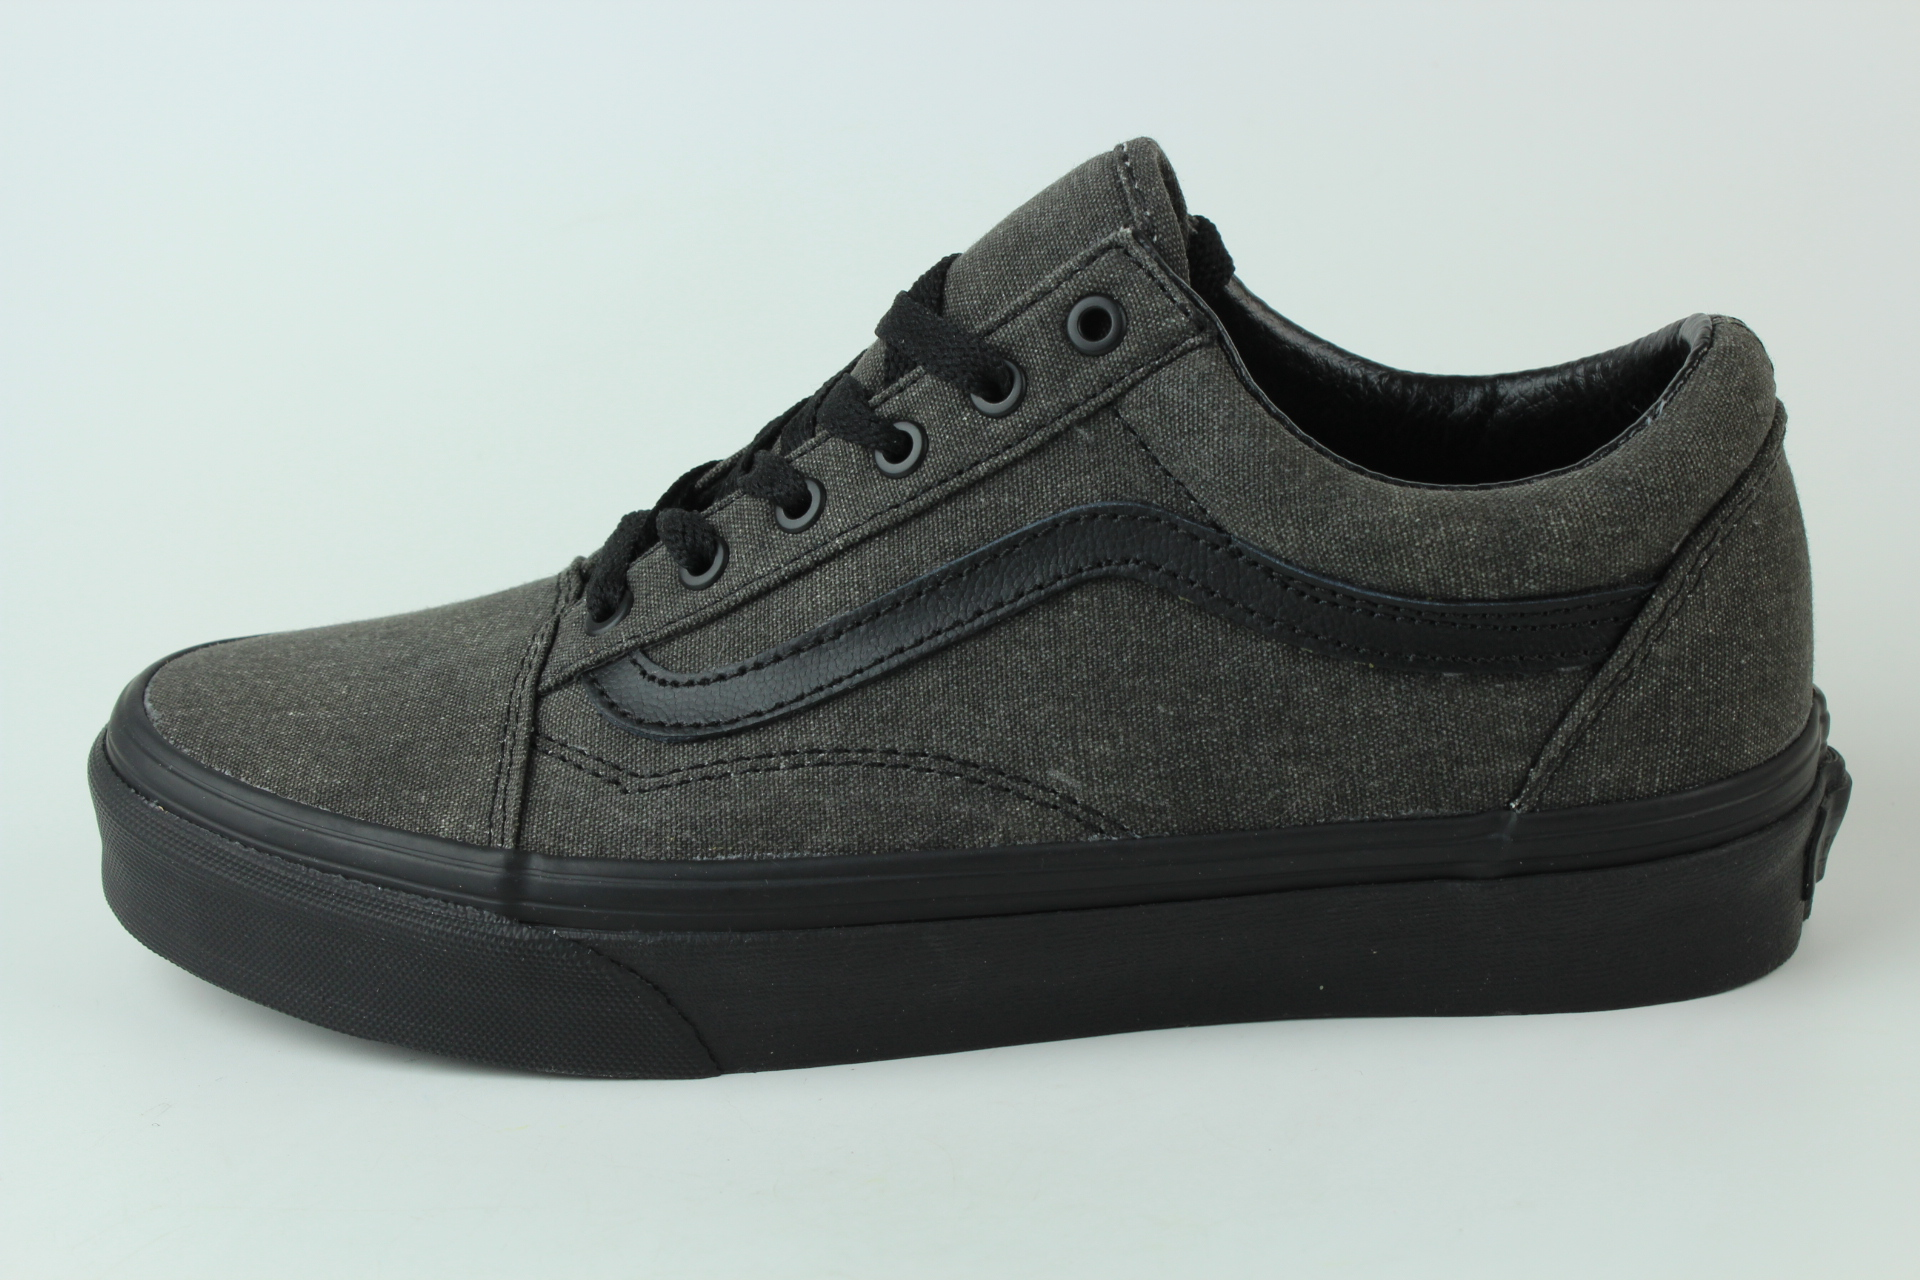 vans old skool size 37